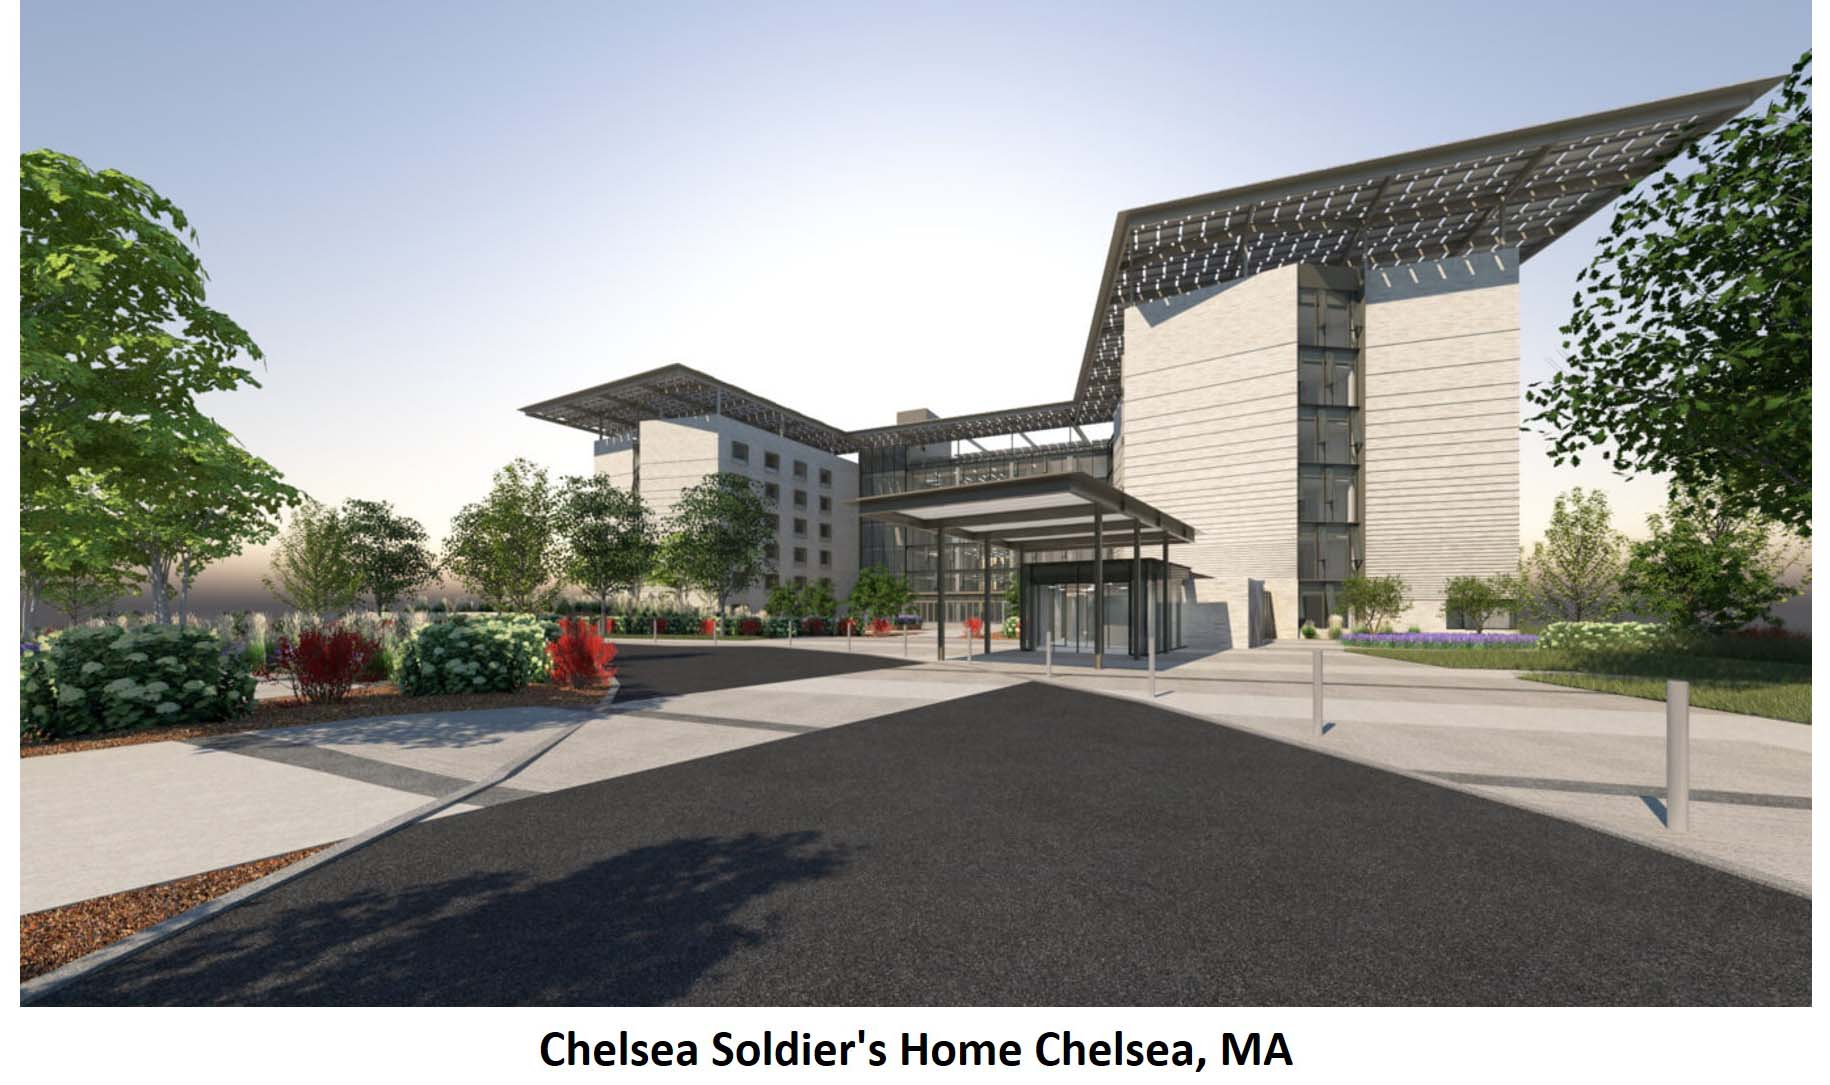 Chelsea Soldiers Home Chelsea MA 1